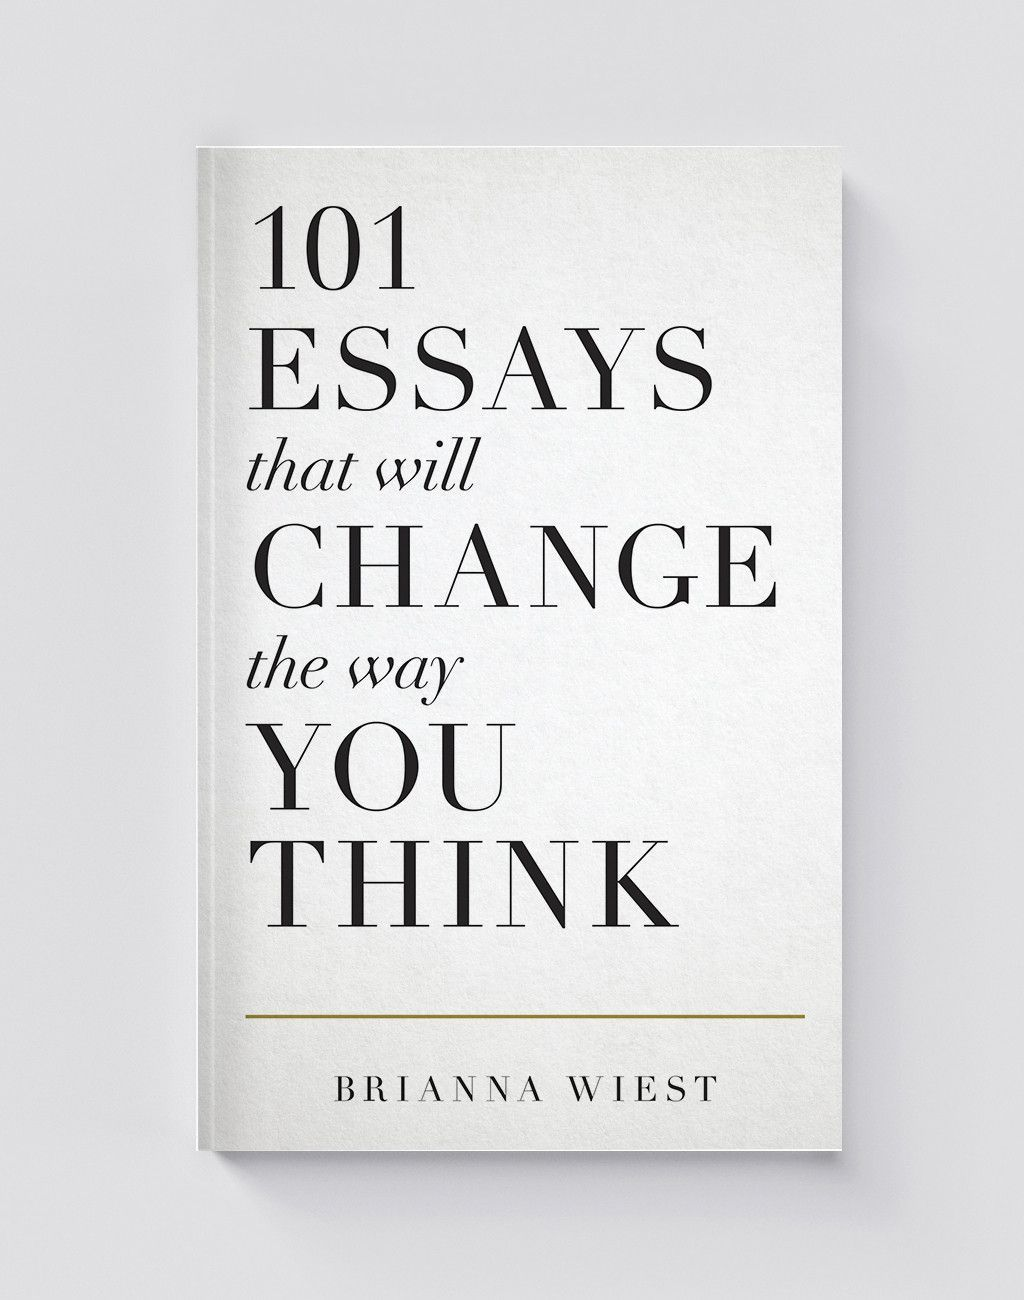 013 Essay Example Essays That Will Change The Way You Think Unusual 101 Book Depository Barnes And Noble Review Full